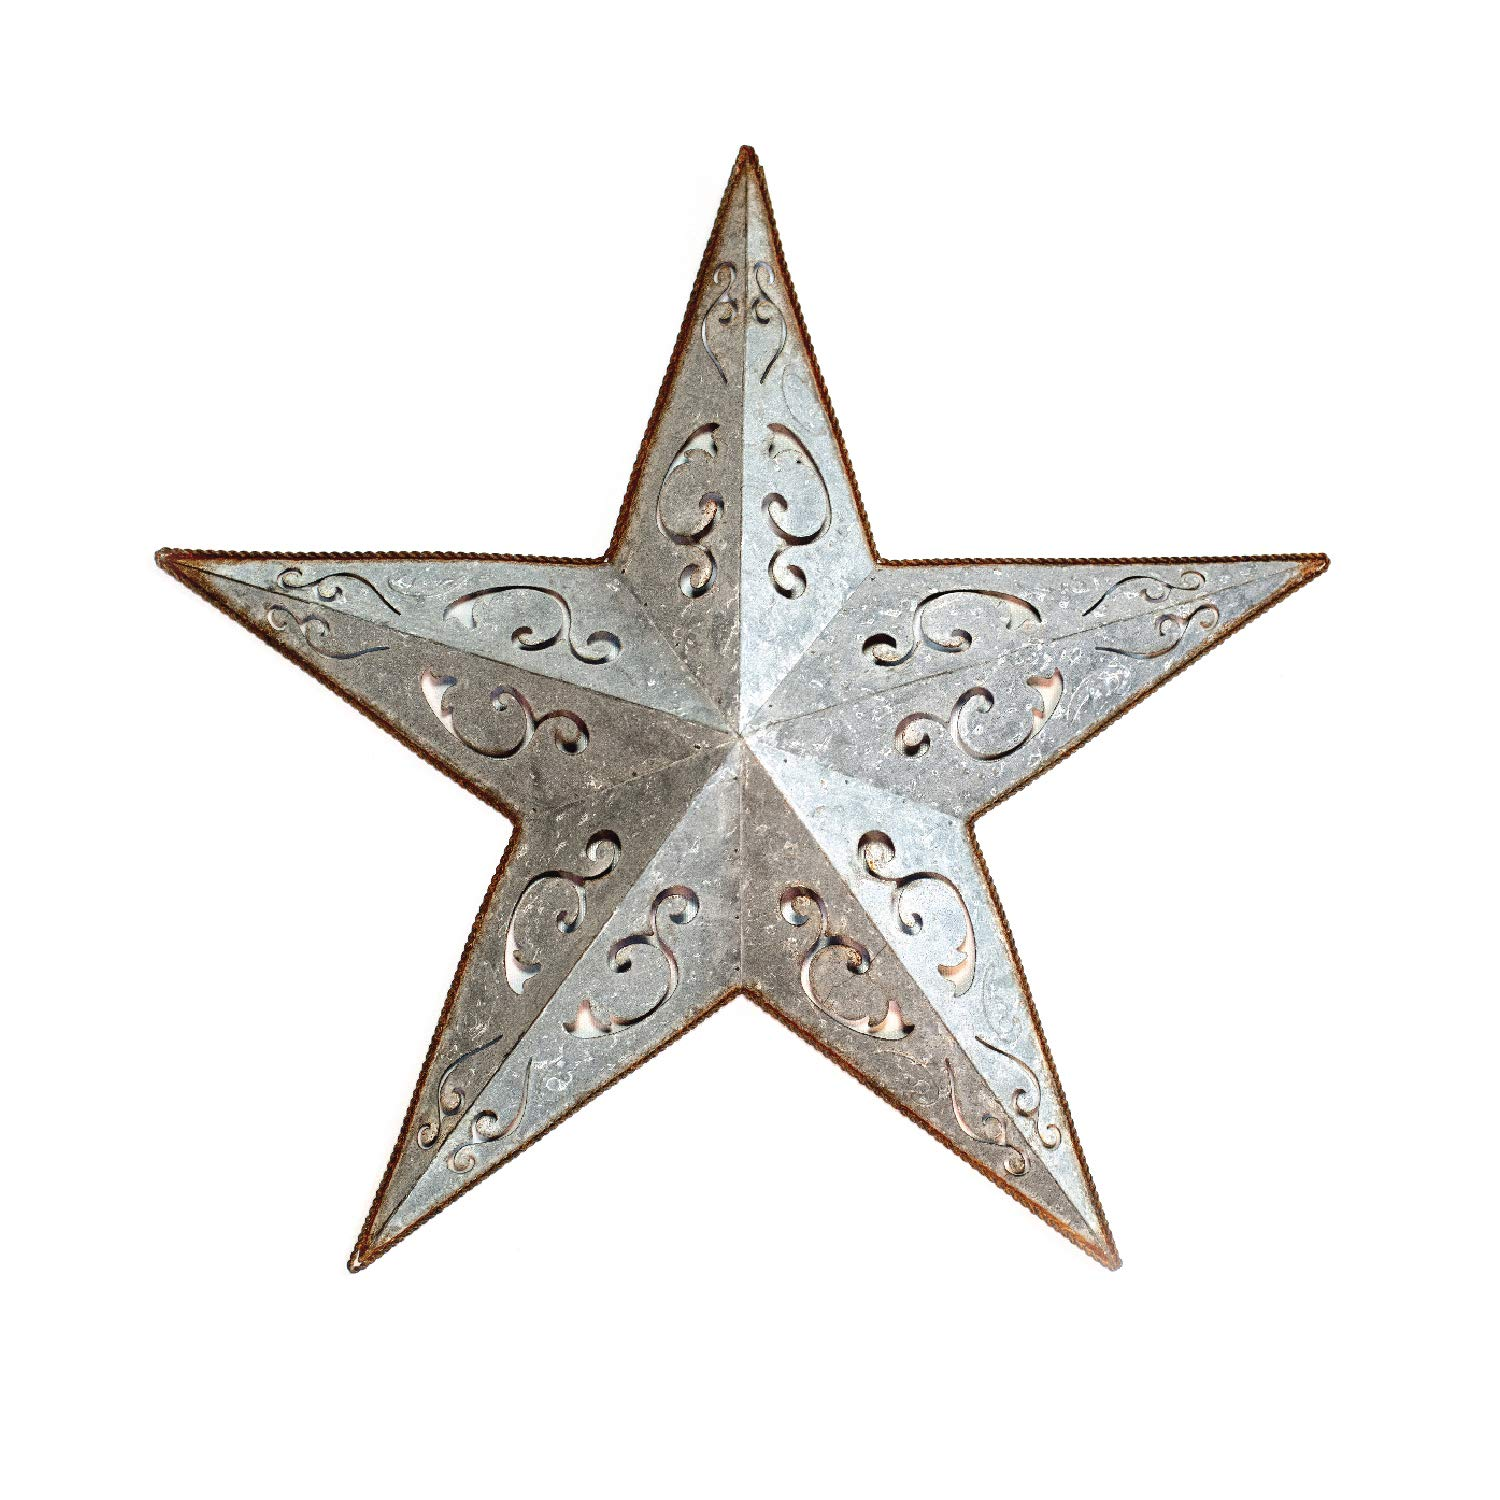 GALVANIZED METAL LACY BARN STAR 24'' -rustic gray zinc cut out tin country indoor outdoor Christmas home decor. Interior exterior lacey tin stars decorations for house walls fence porch. Quality gift